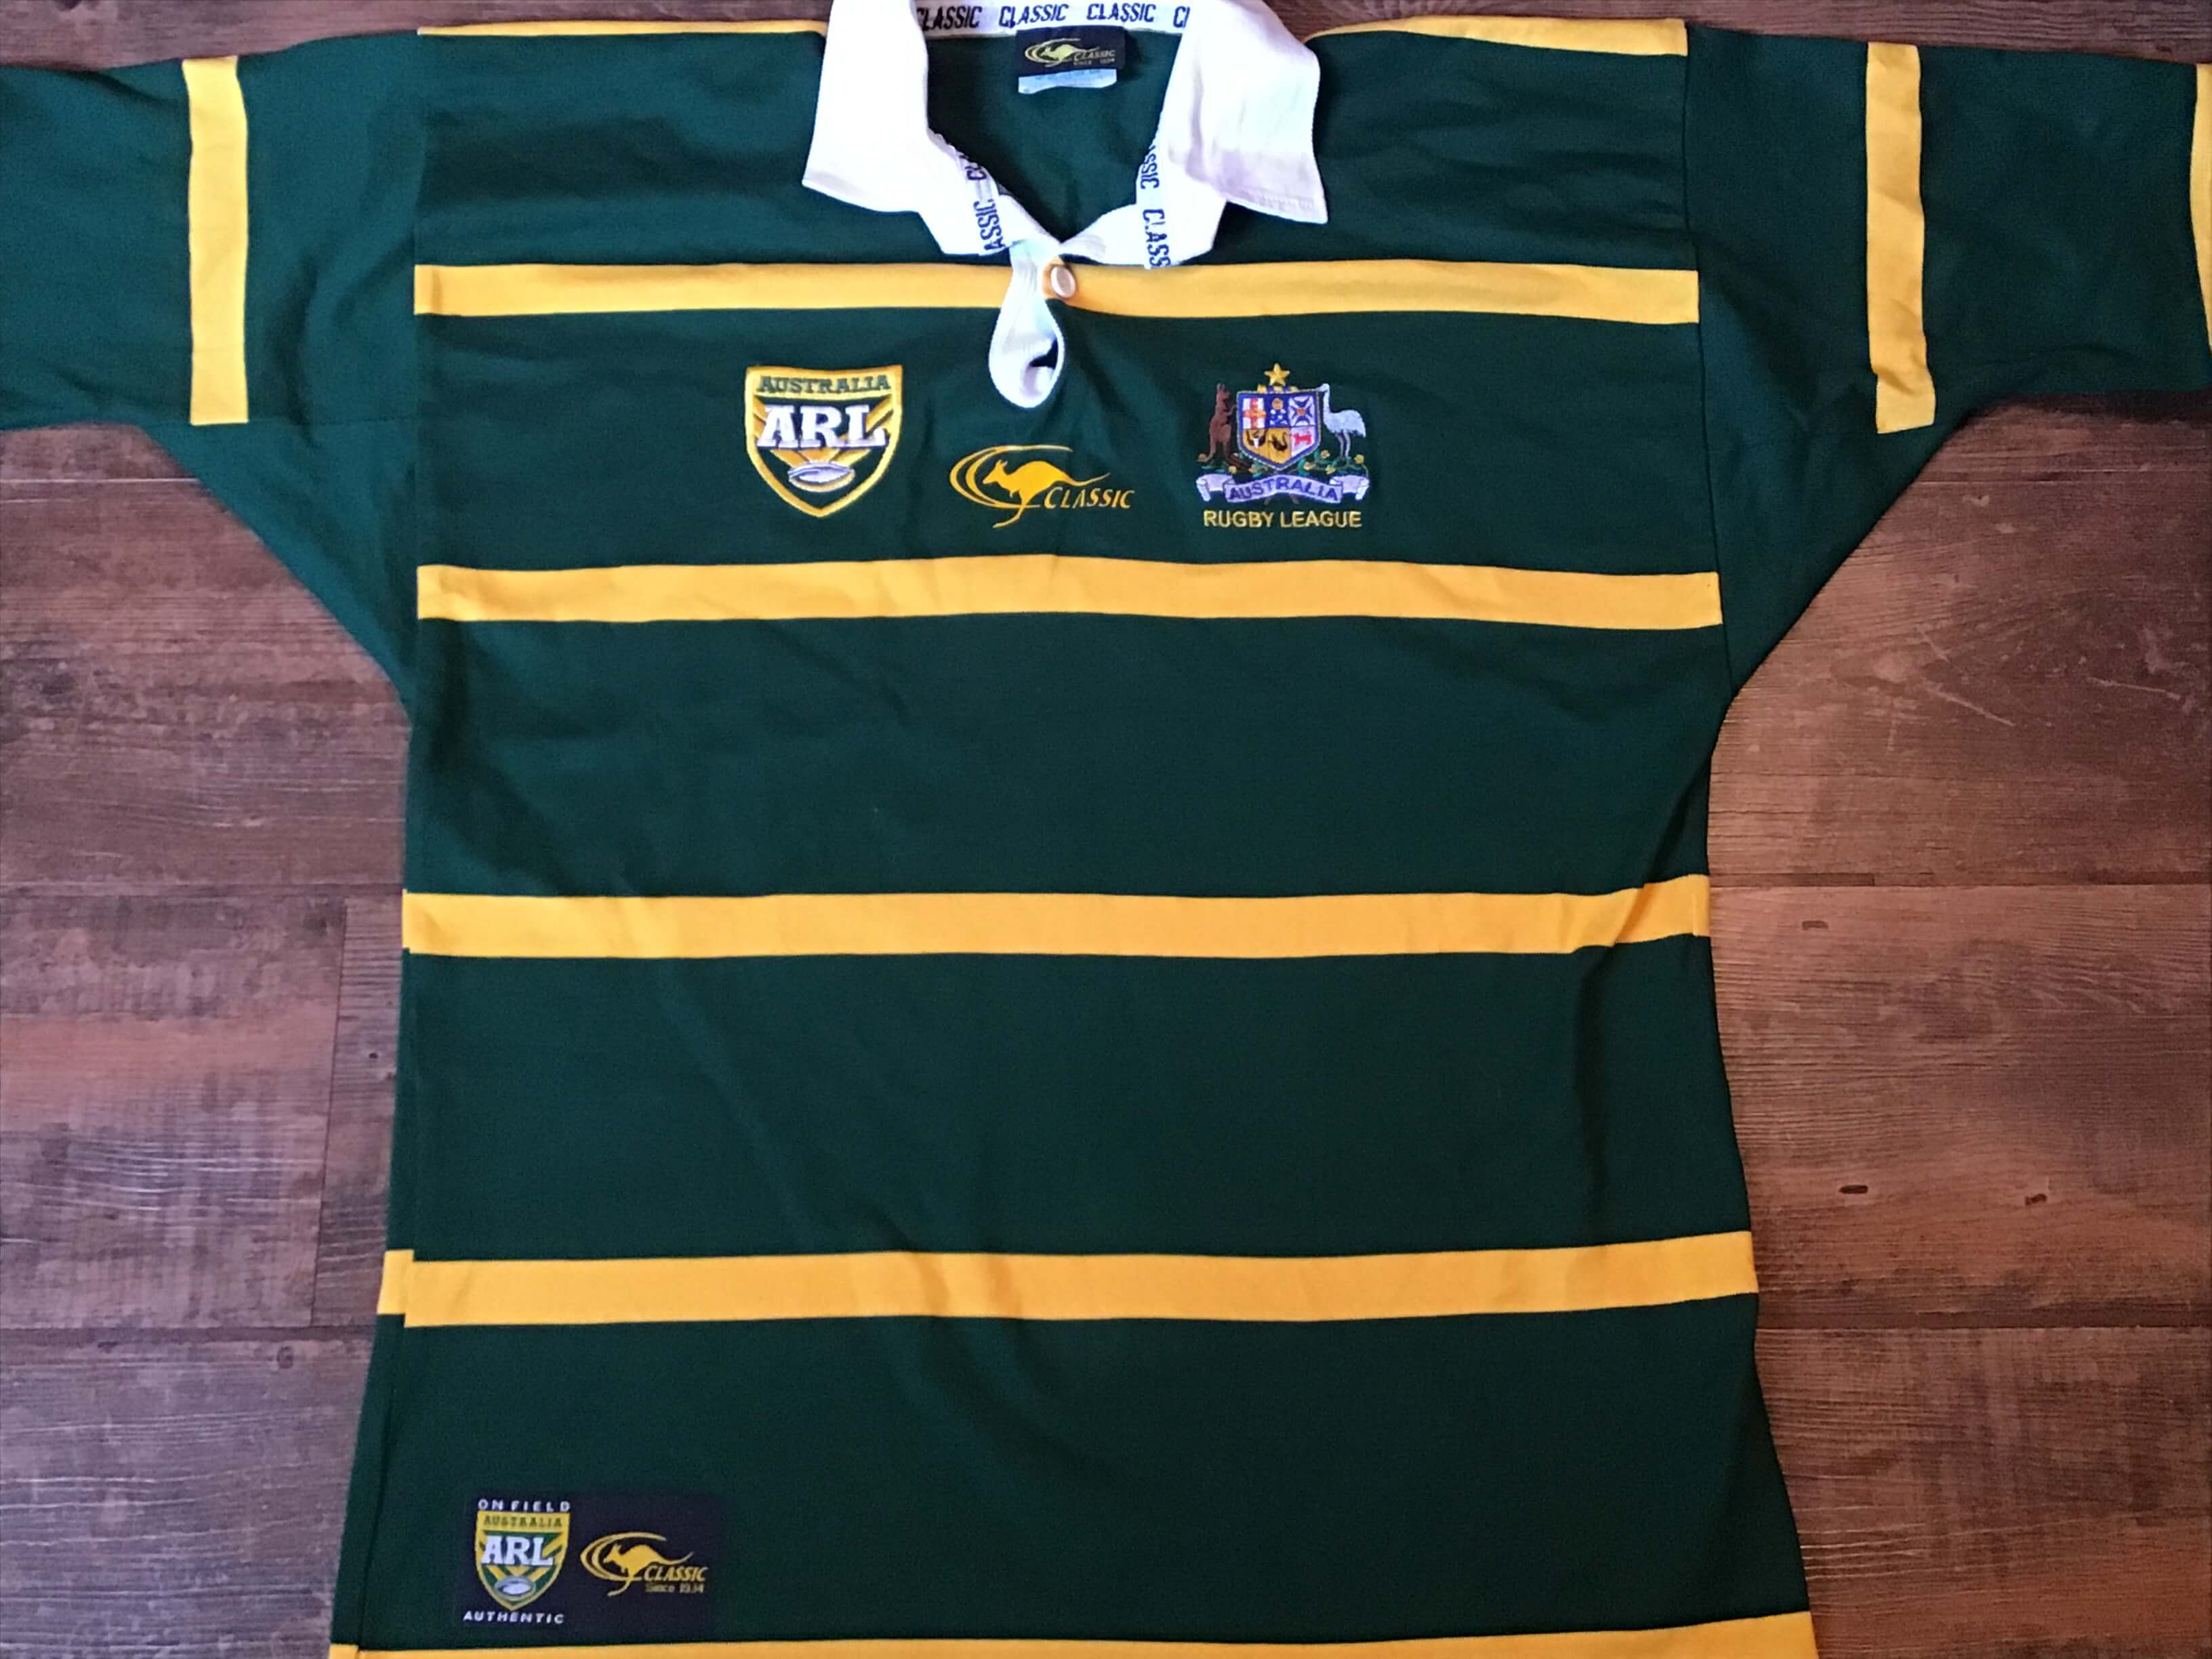 2003 Australia Rugby League